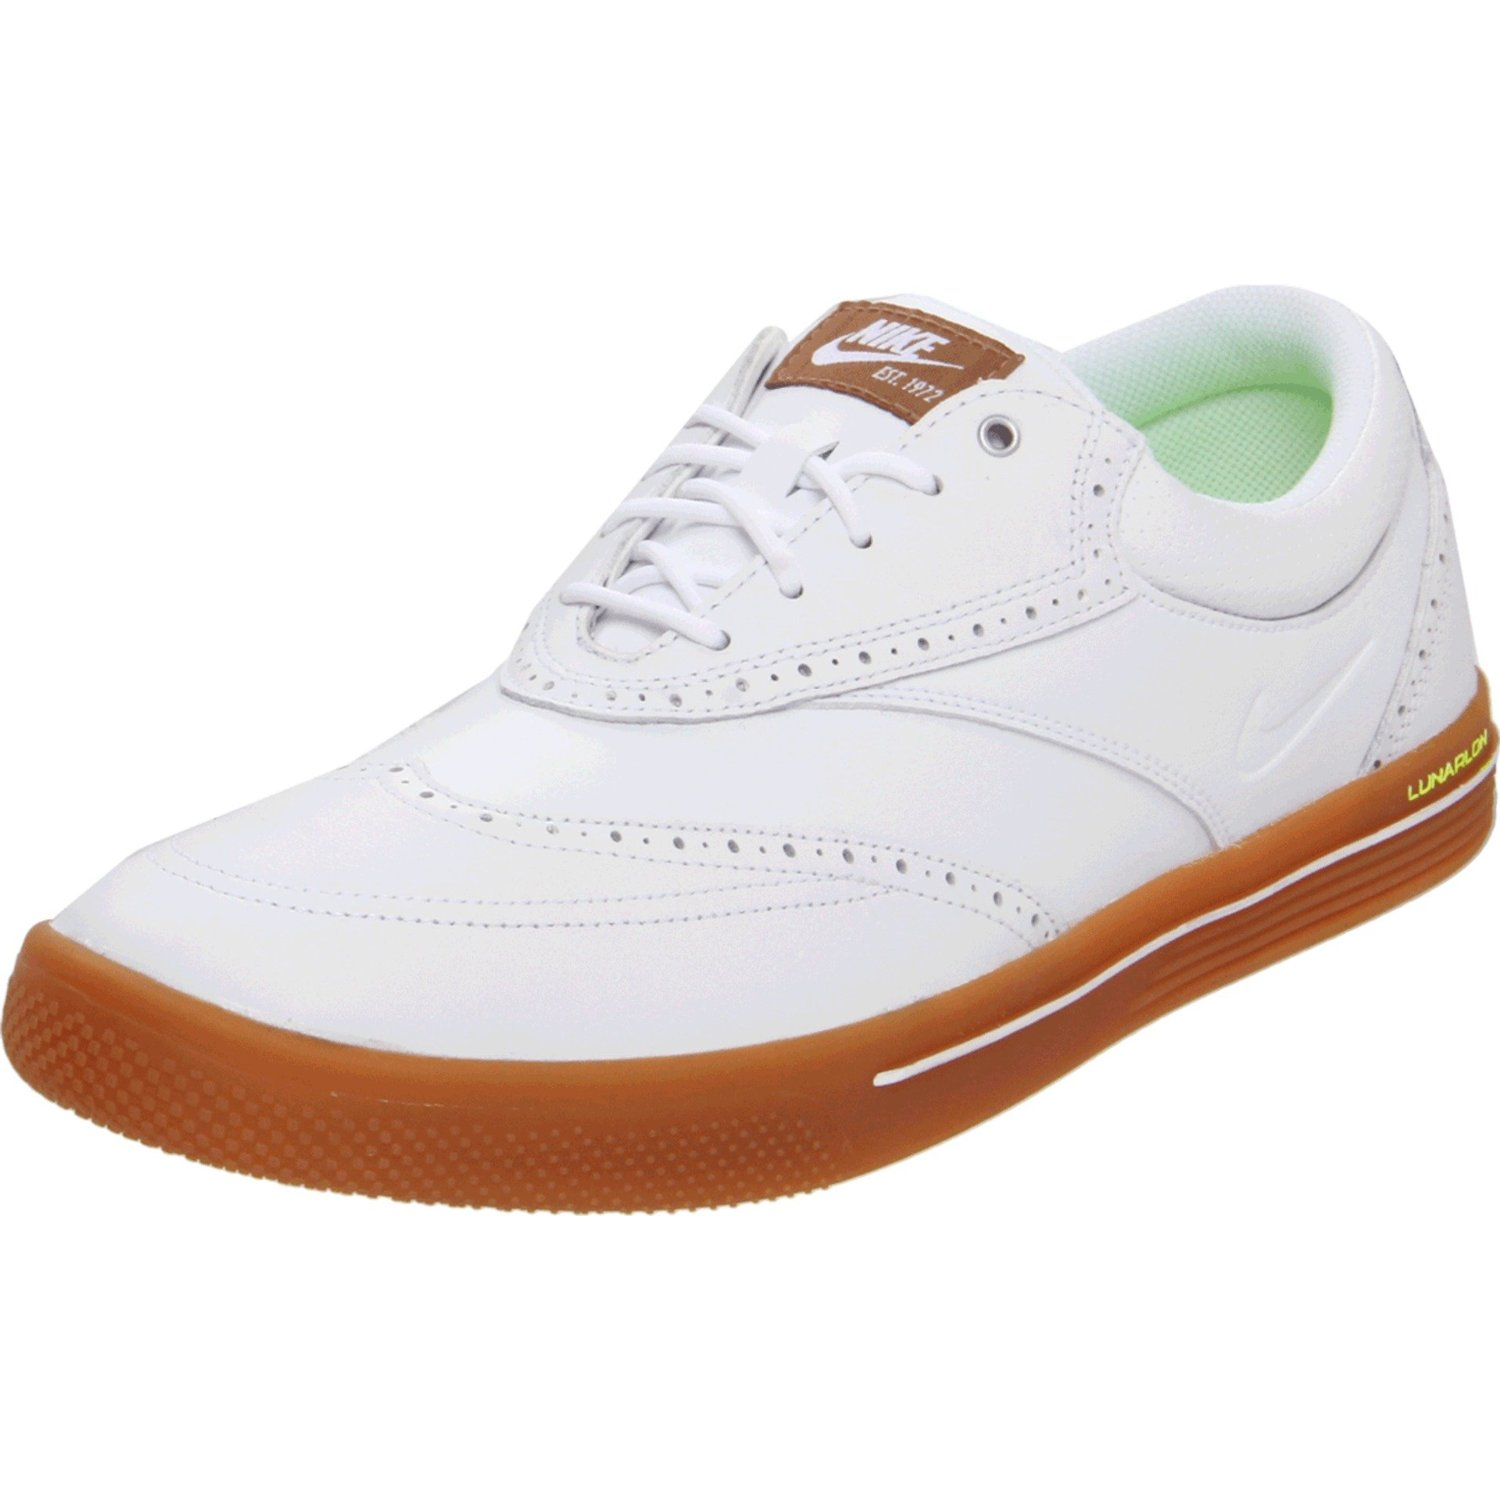 Brown And White Wingtip Golf Shoes